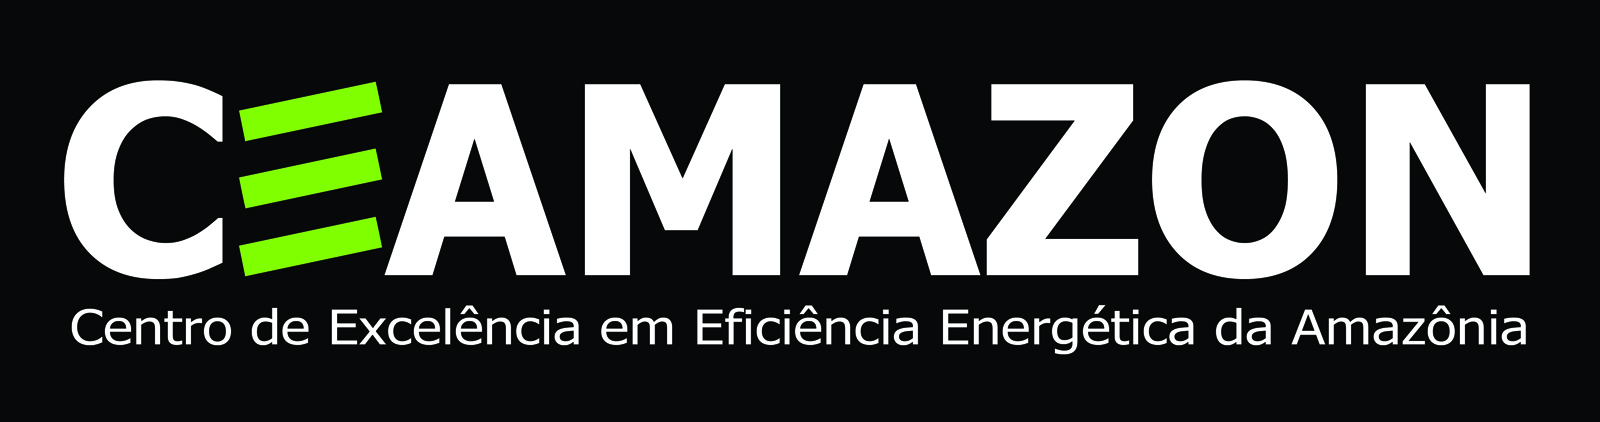 Logotipo Ceamazon